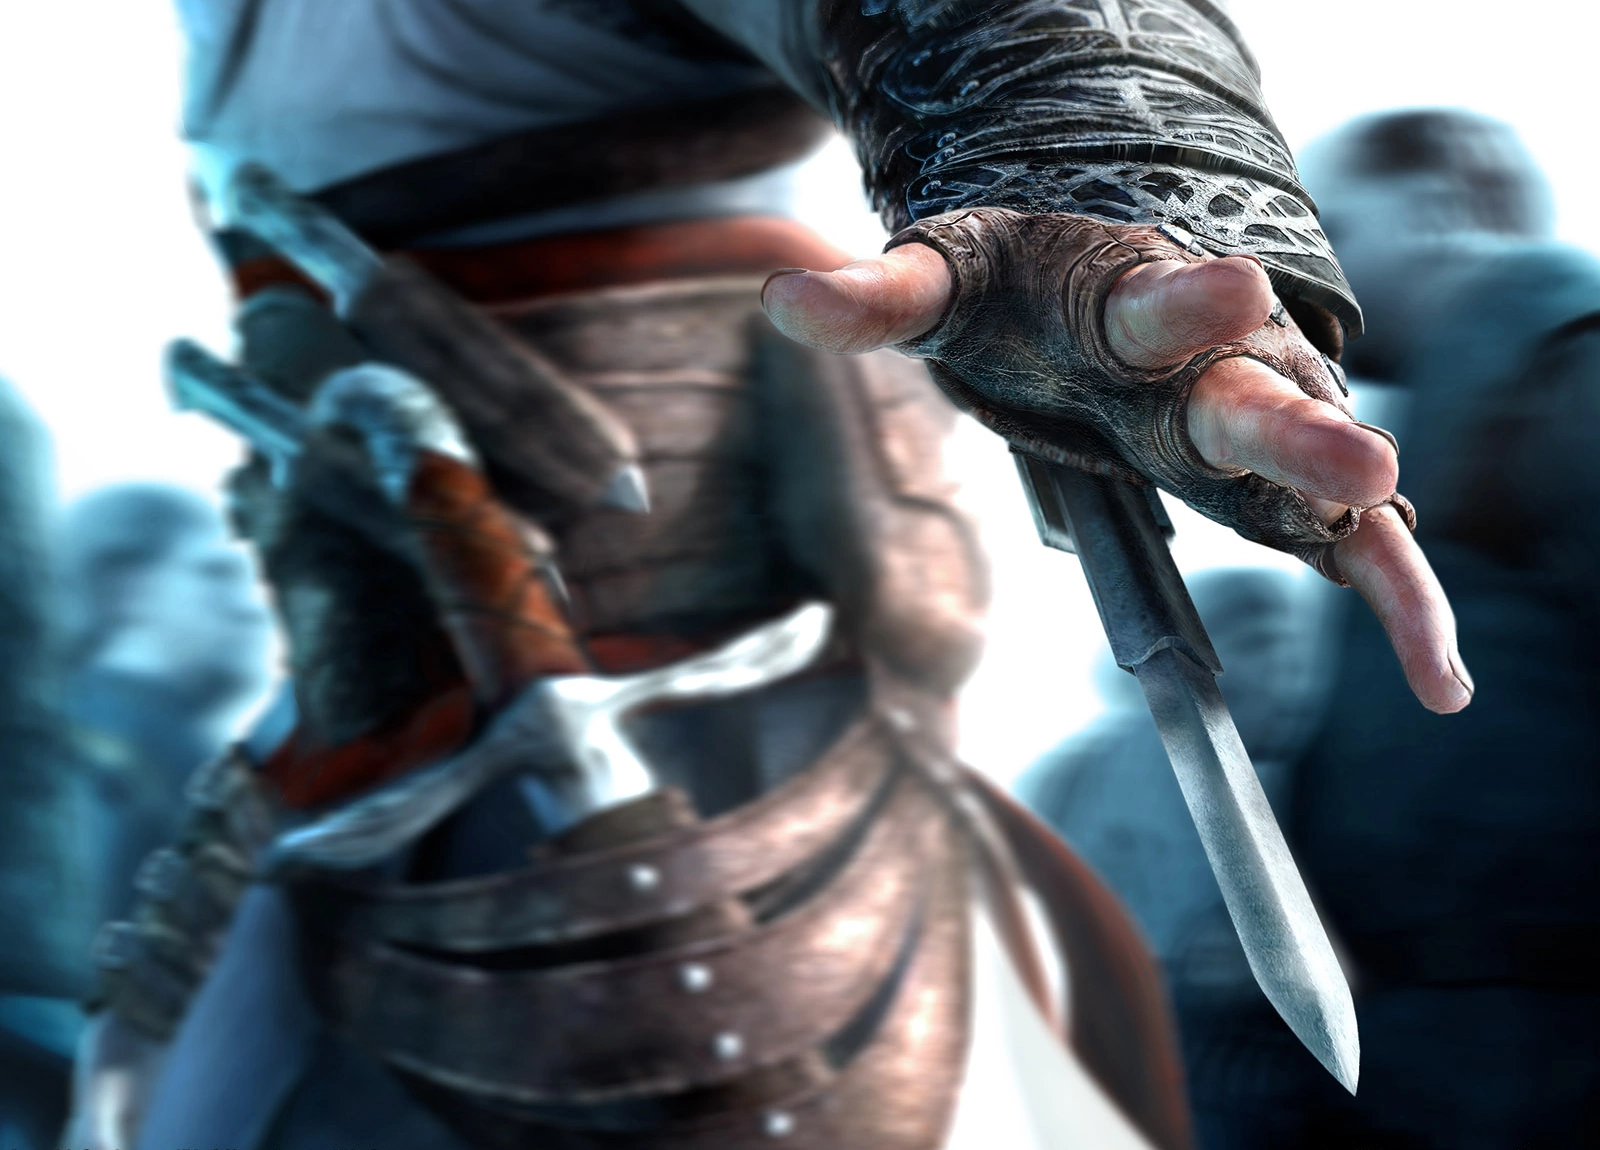 The Origins Story Of The Assassins Brotherhood Feels Messy And